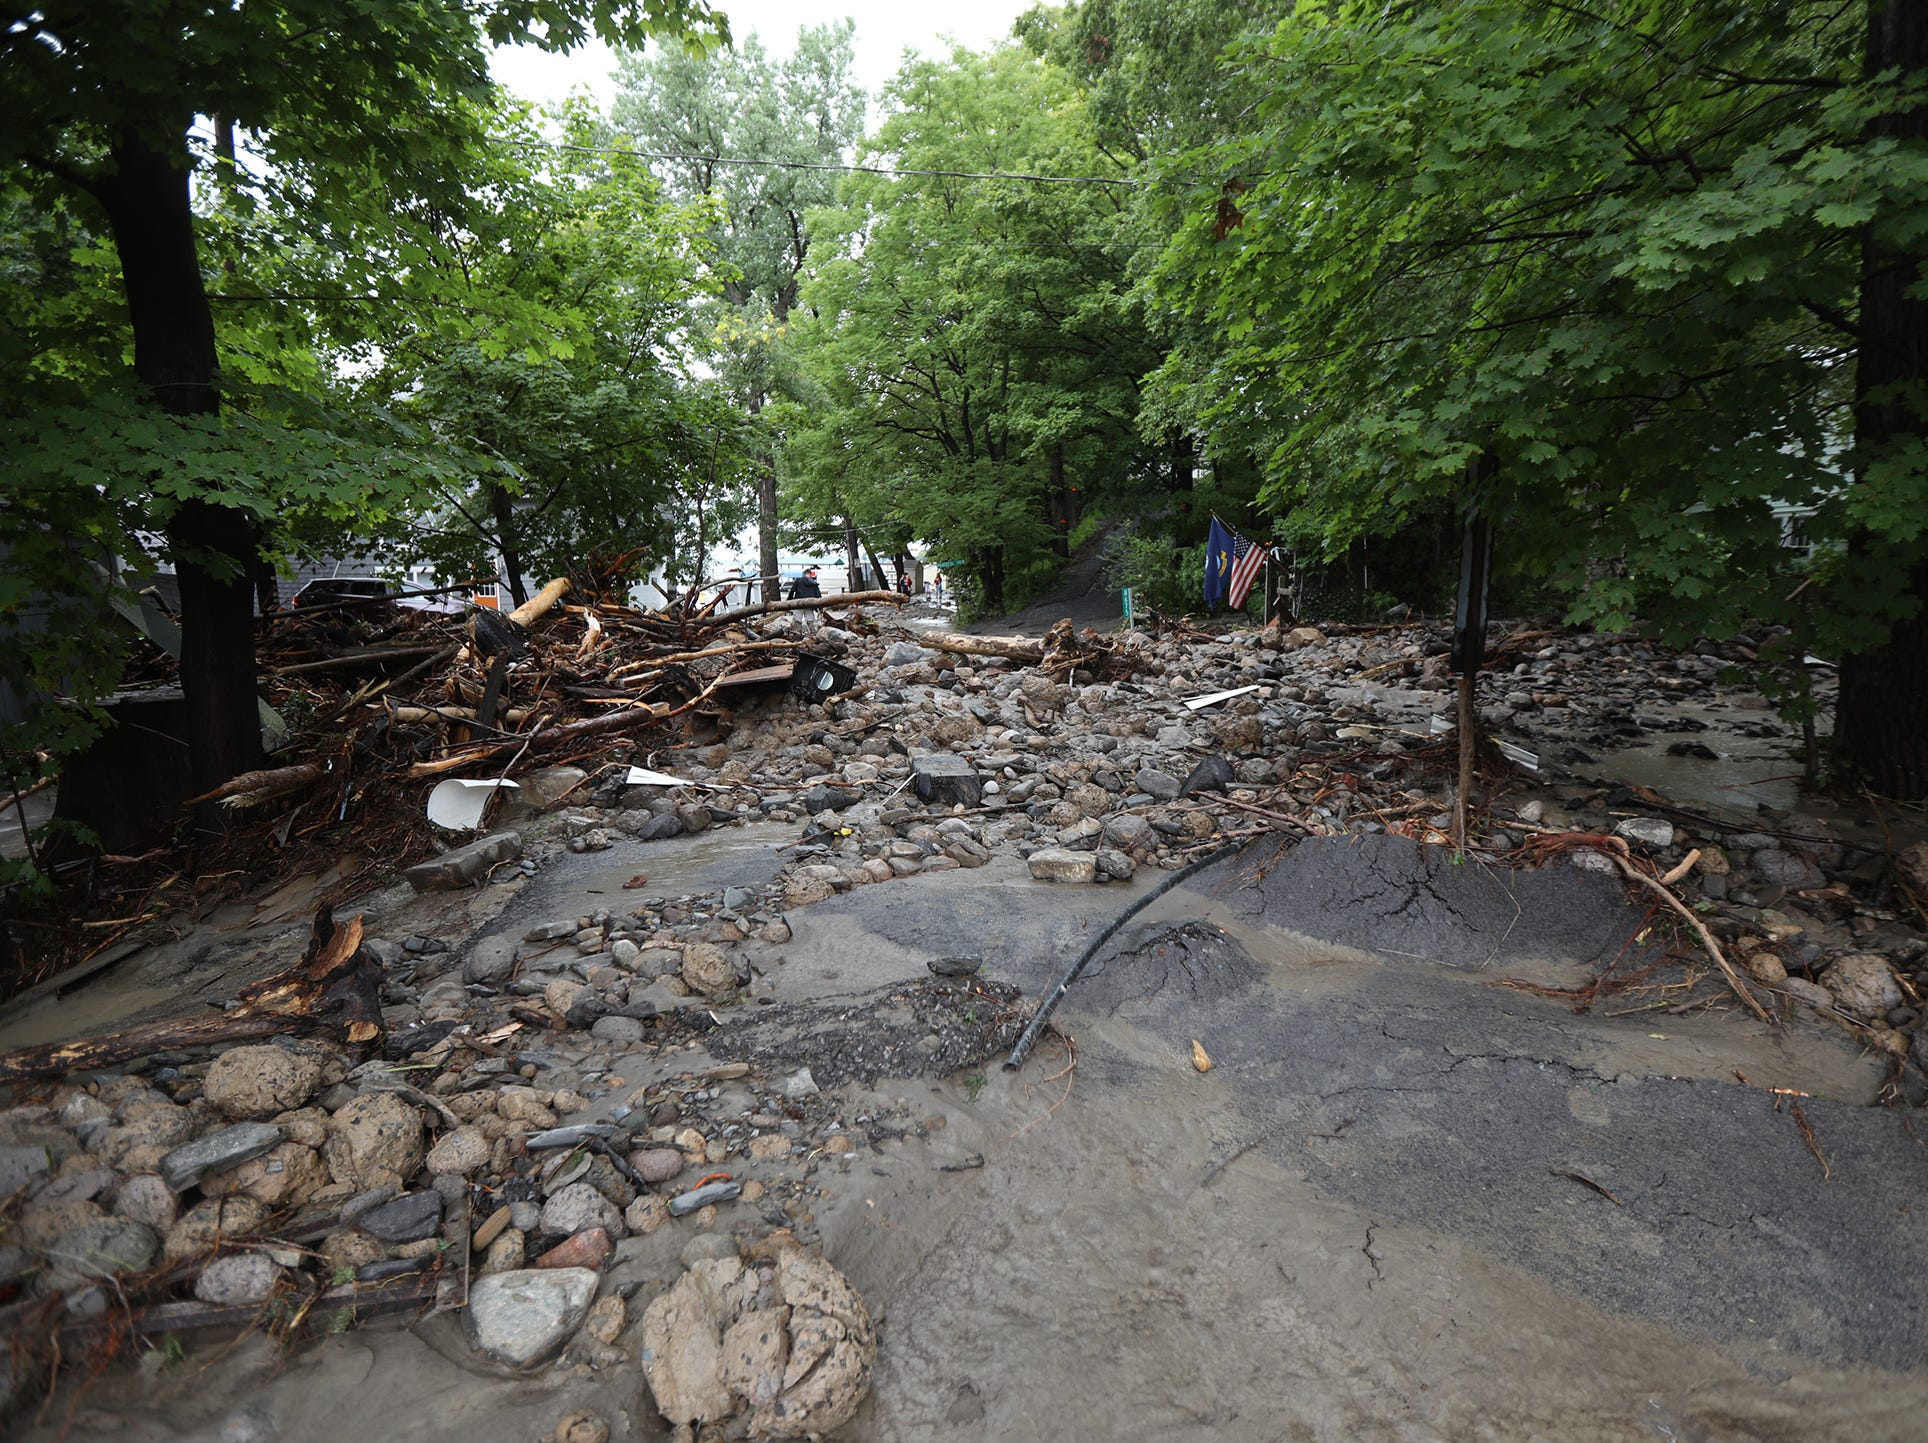 For several hours a portion of Lower Lake Road near Shaw Road was impassable after heavy rain caused flooding and washing away at Lodi Point, New York on Tuesday, August 14, 2018.